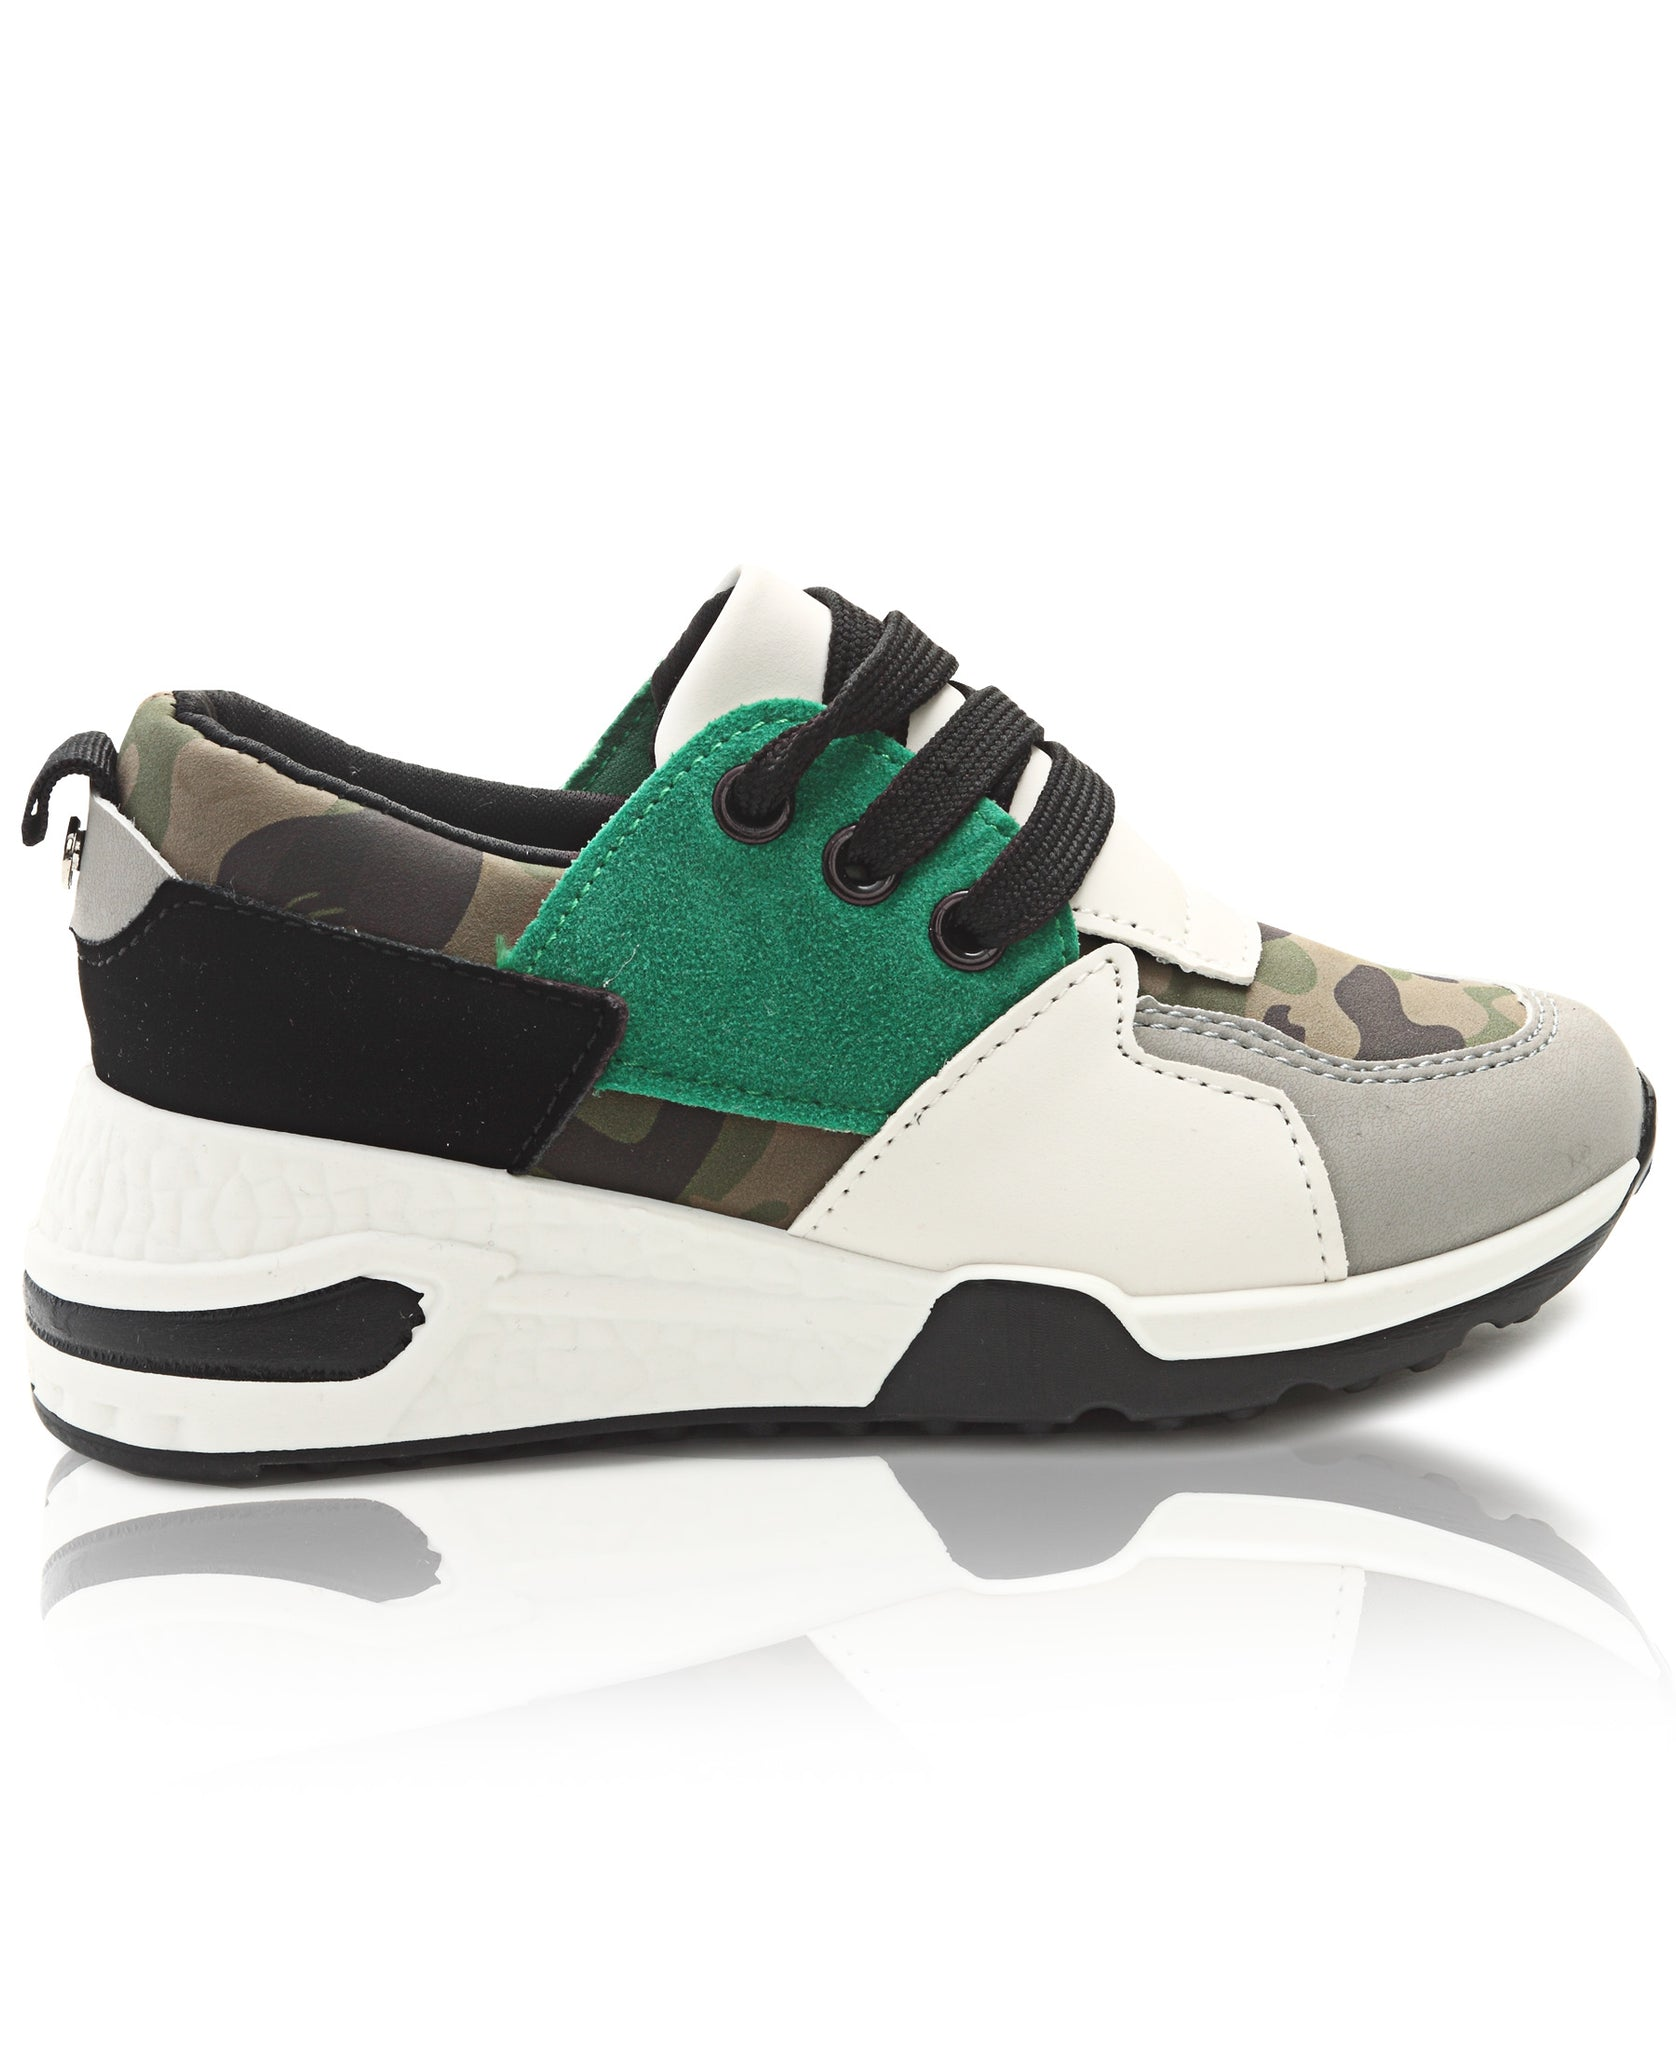 Girls Sneakers - Green